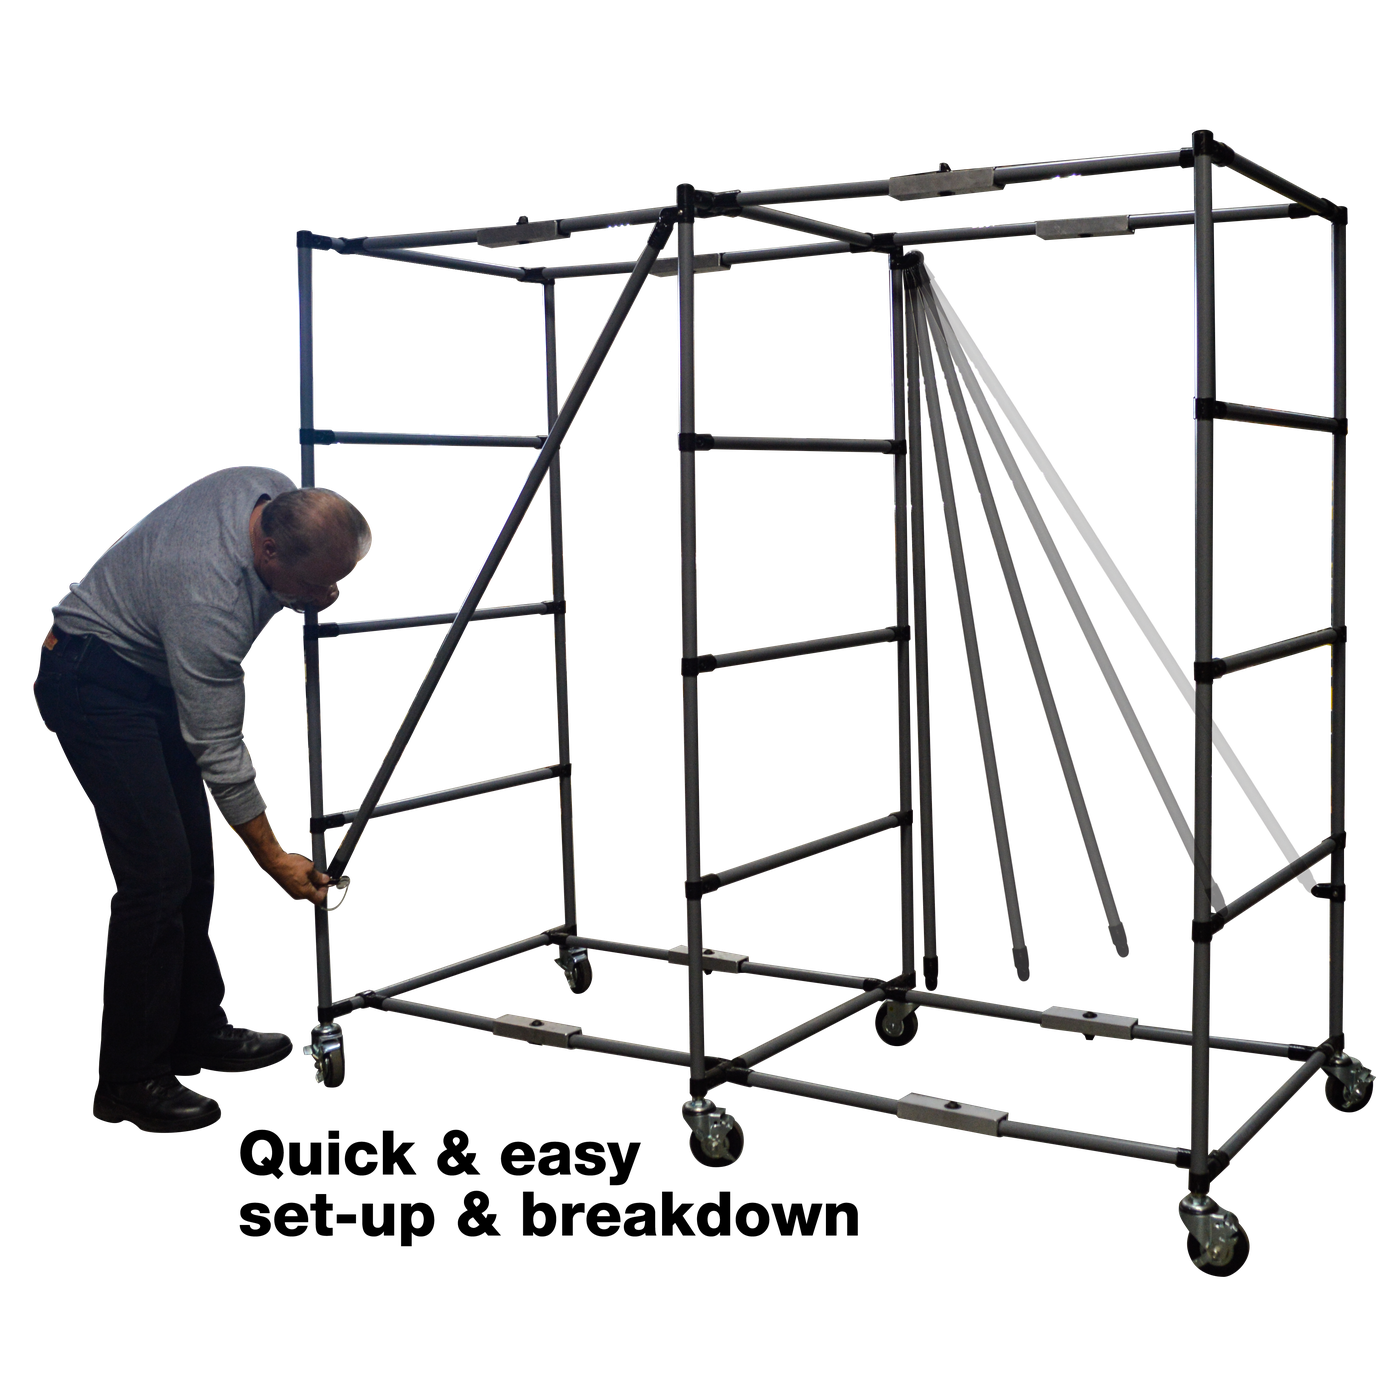 Deployable Rack System with Full Rollers-Cadaver Handling & Storage Systems-Mortech Manufacturing Company Inc. Quality Stainless Steel Autopsy, Morgue, Funeral Home, Necropsy, Veterinary / Anatomy, Dissection Equipment and Accessories